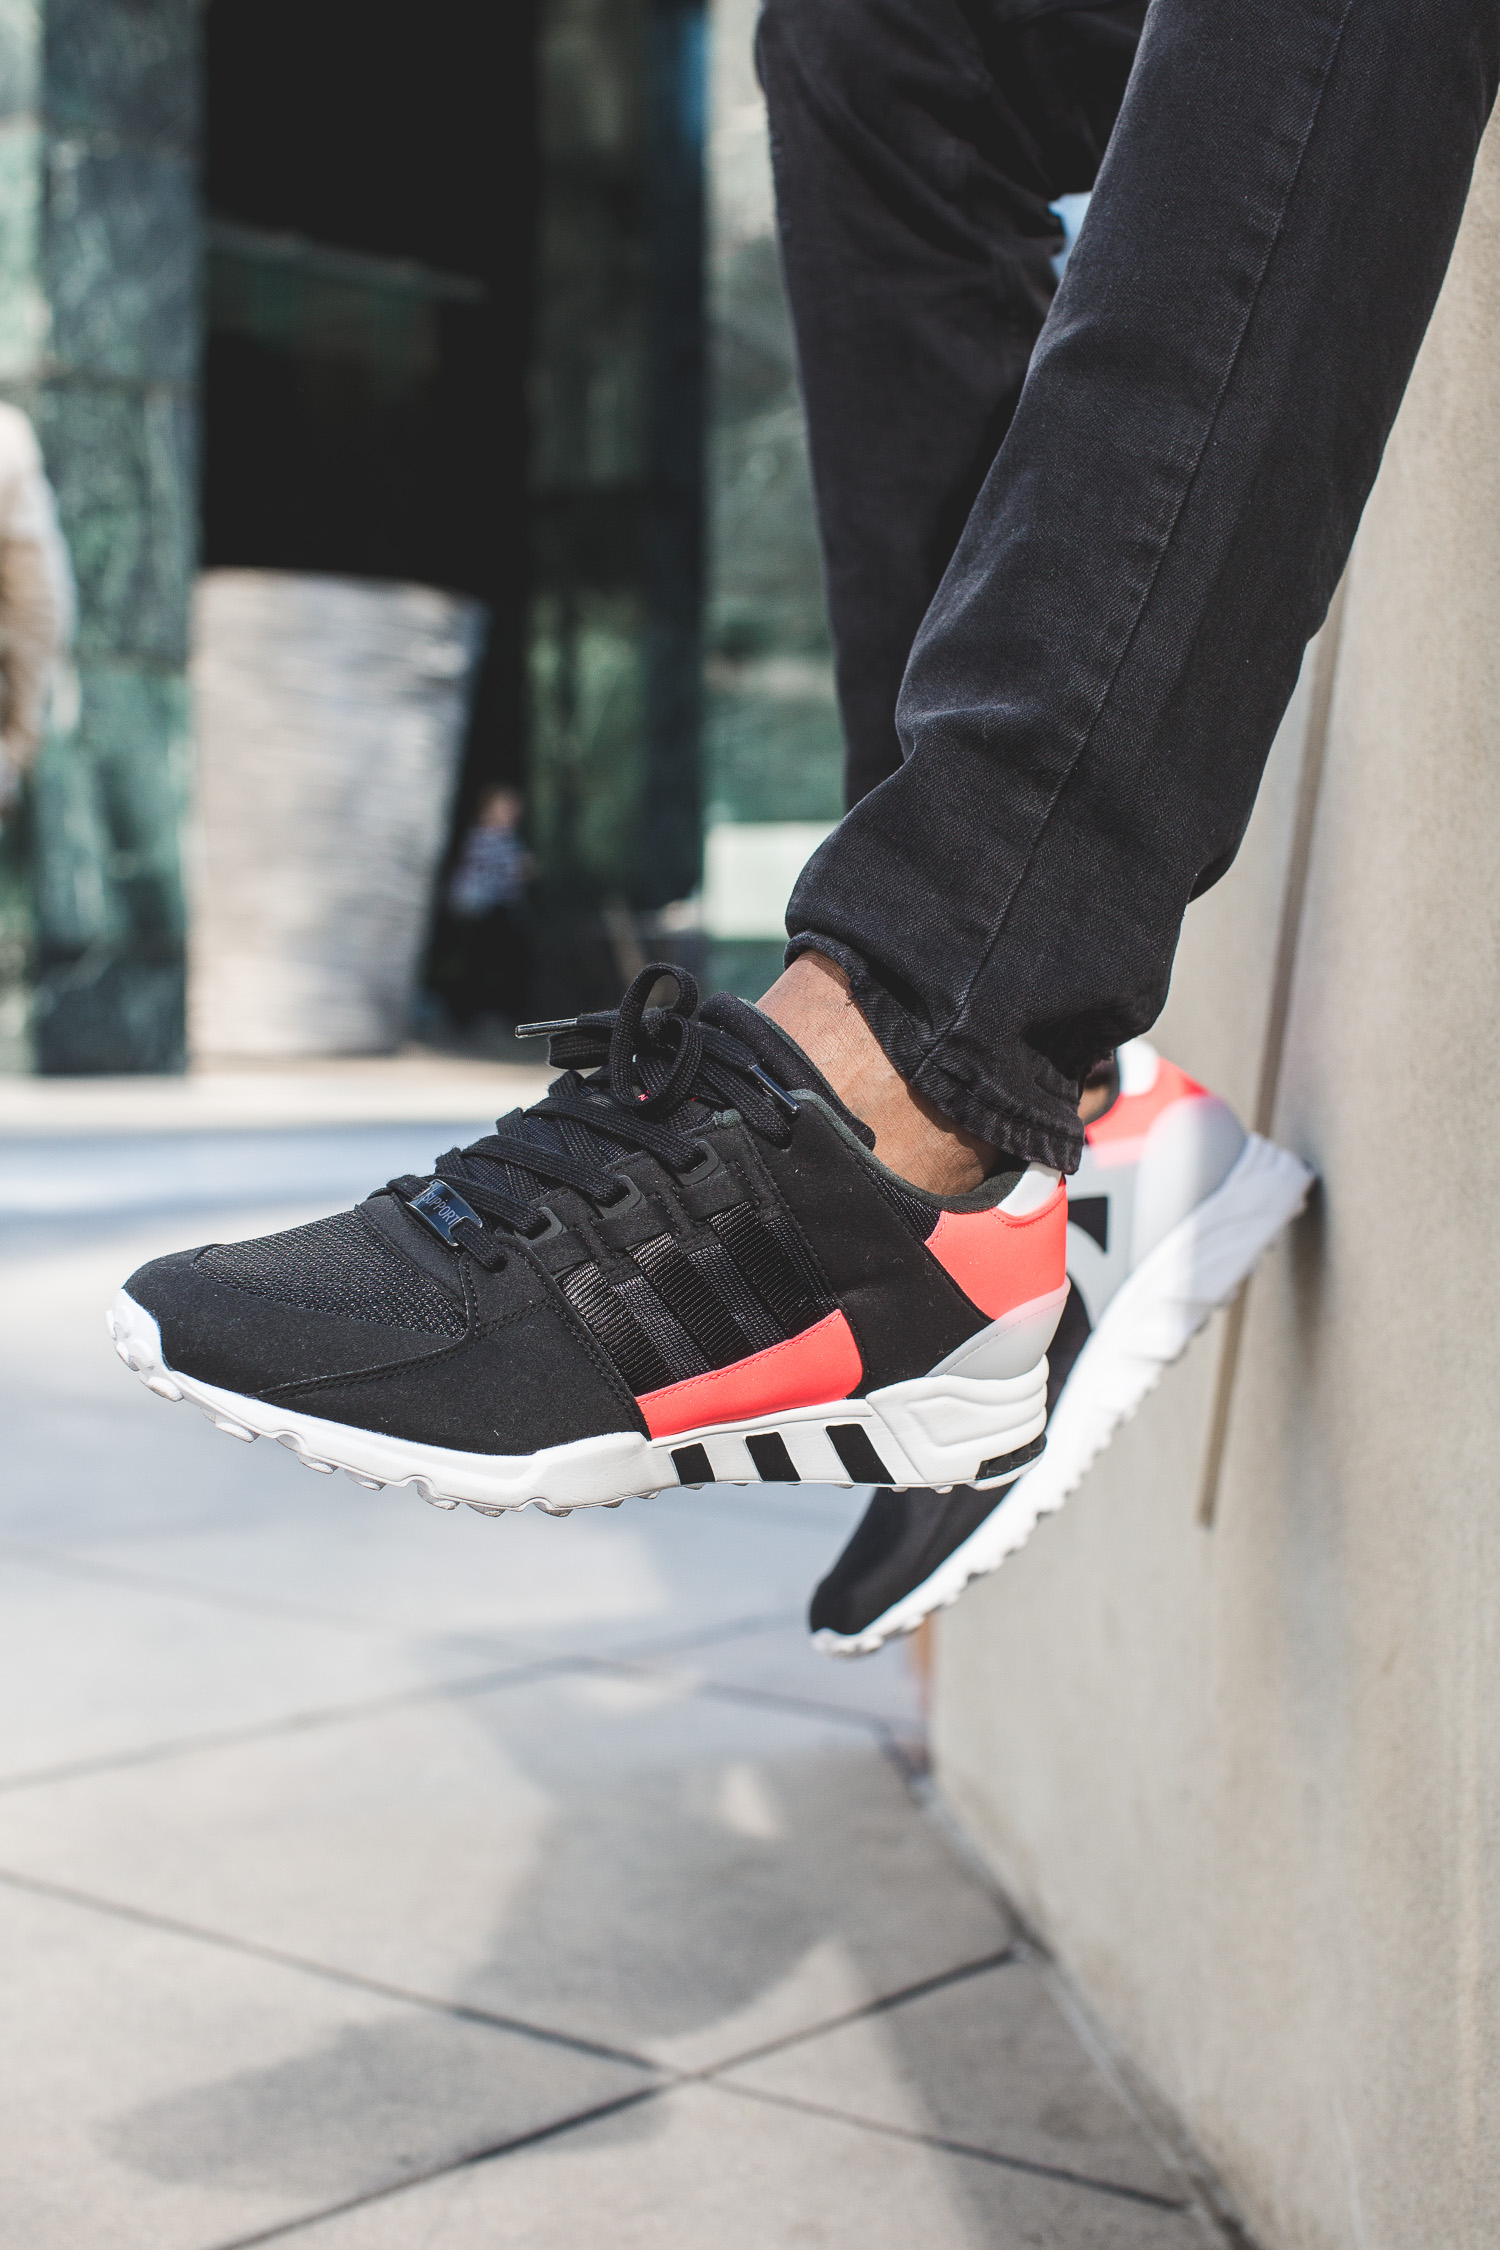 Adidas EQT Shoes for sale in , Kuala Lumpur Mudah